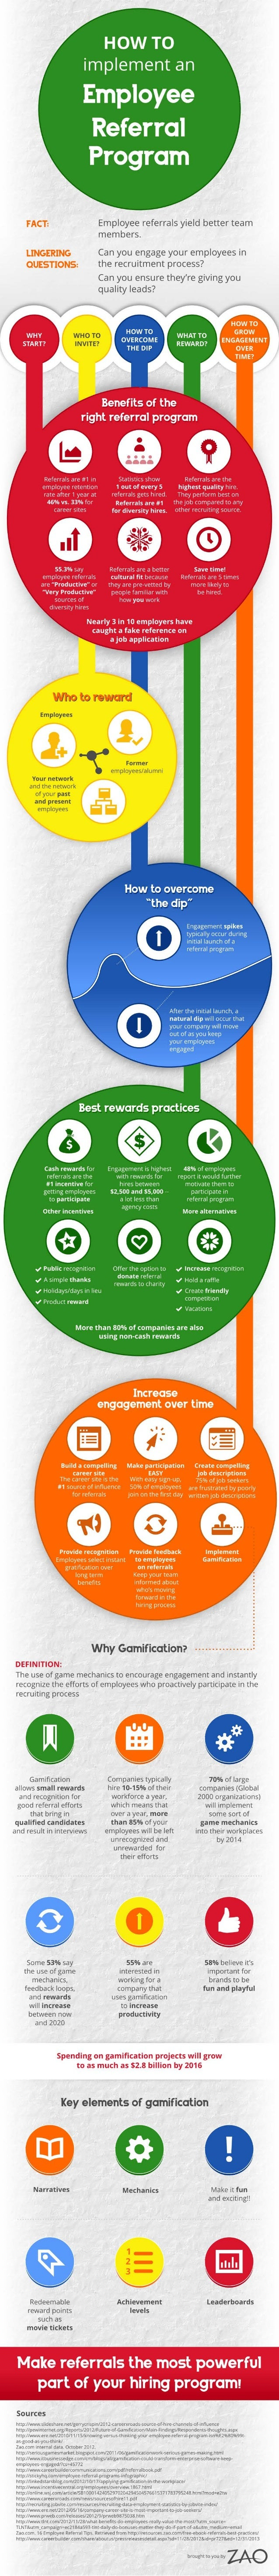 How to Implement an Employee Referral Program [INFOGRAPHIC]